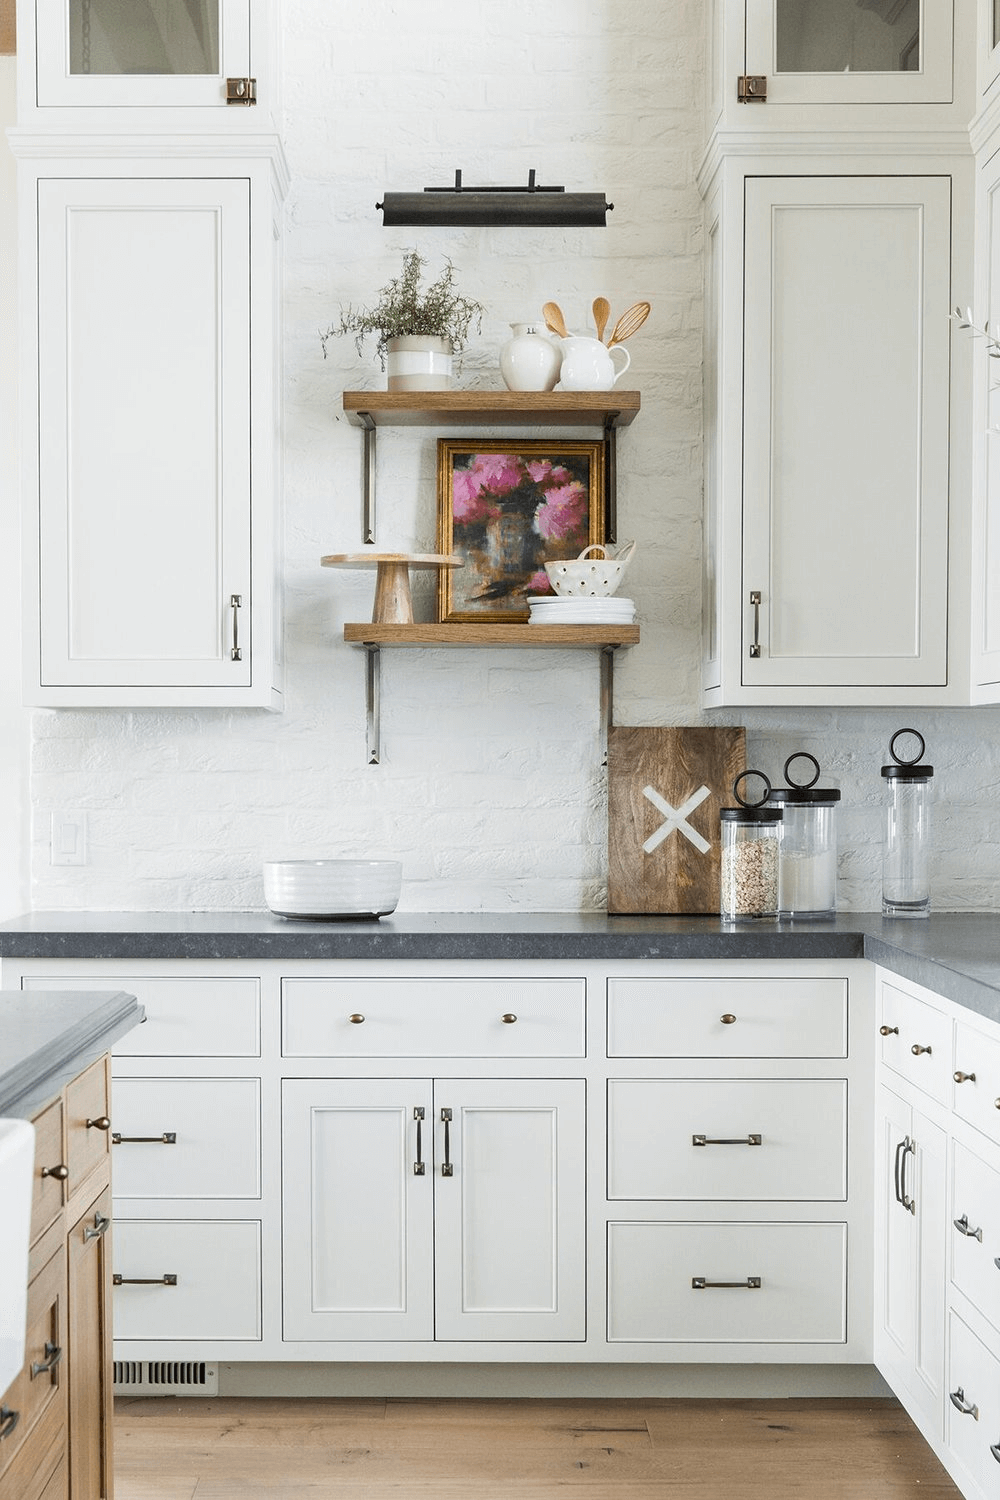 this is a rustic farmhouse kitchen with open shelves and cabinets(1)